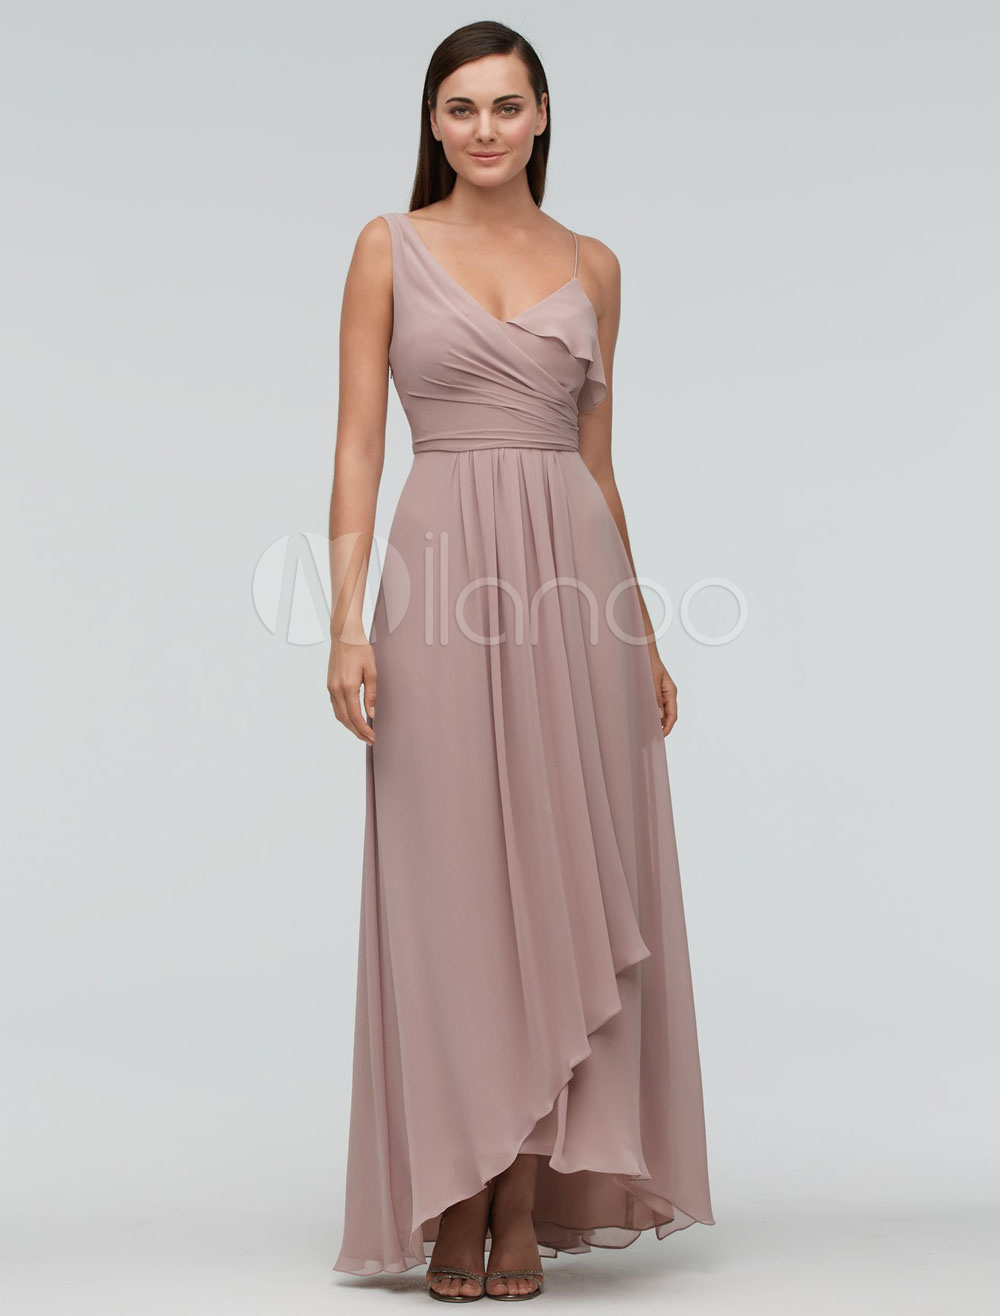 Buy Blush Bridesmaid Dress Chiffon Maxi Wedding Party Dress One-shoulder Asymmetrical A-line Evening Dress for $115.99 in Milanoo store